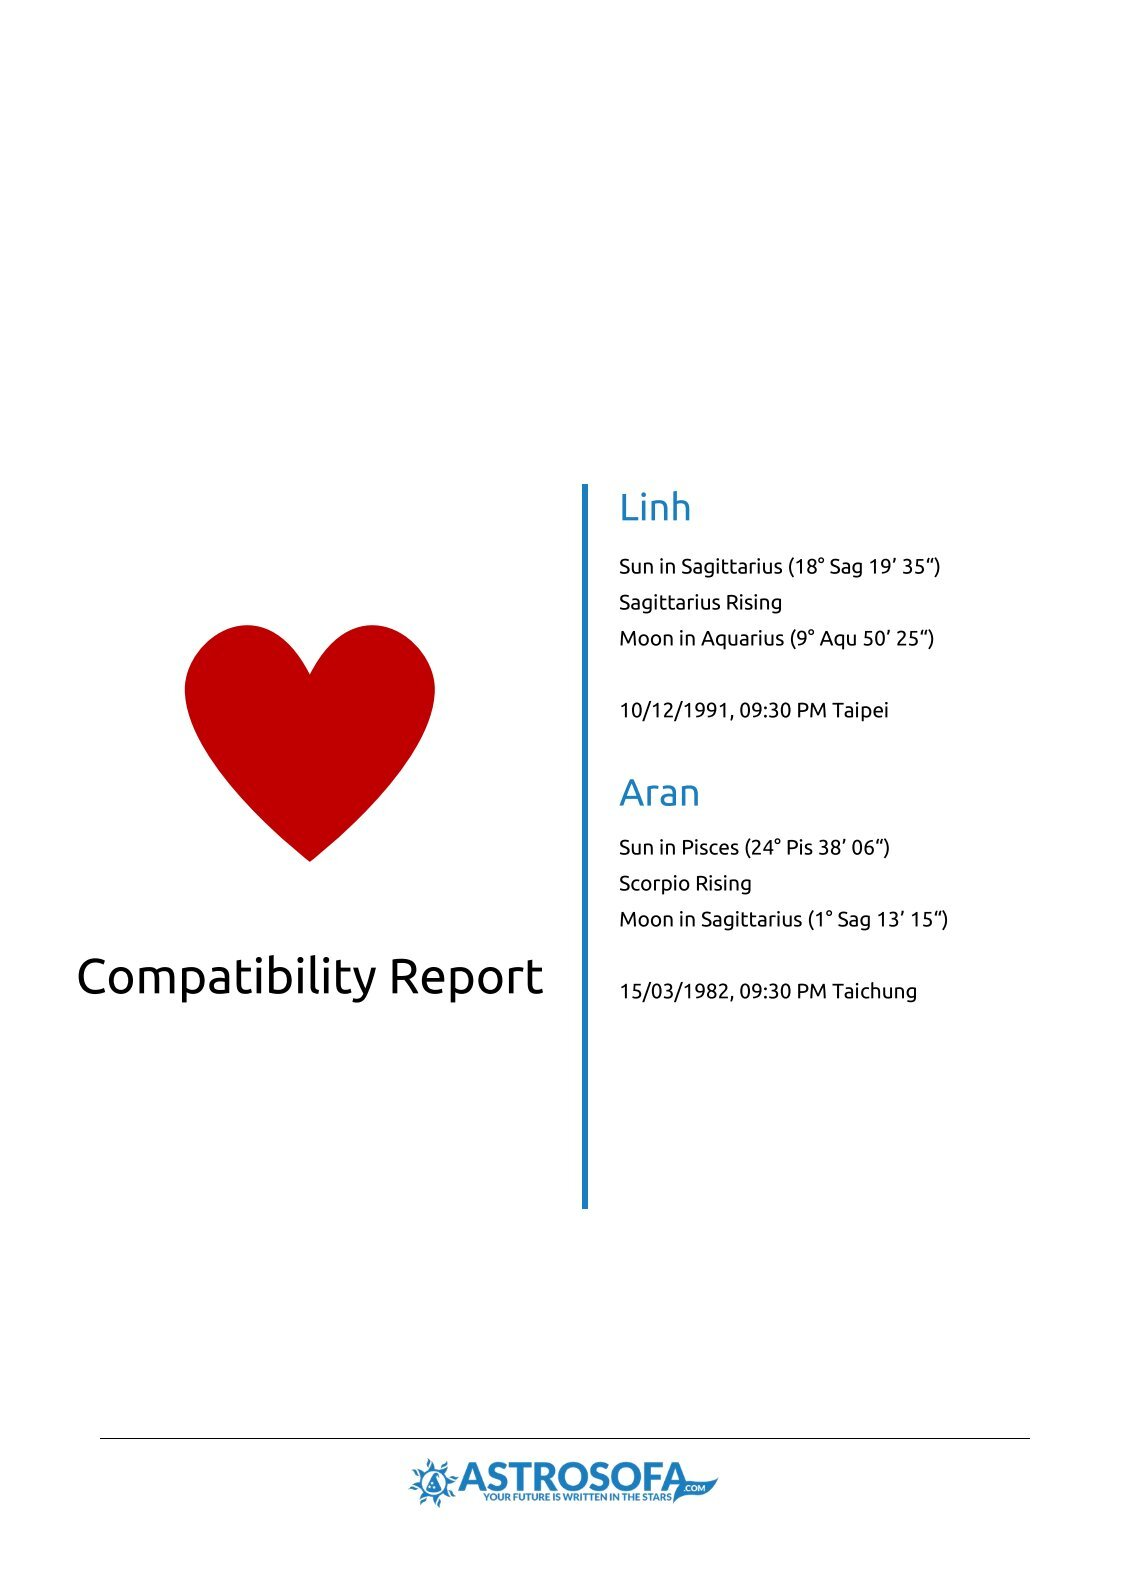 Compatibility Report Linh and Aran